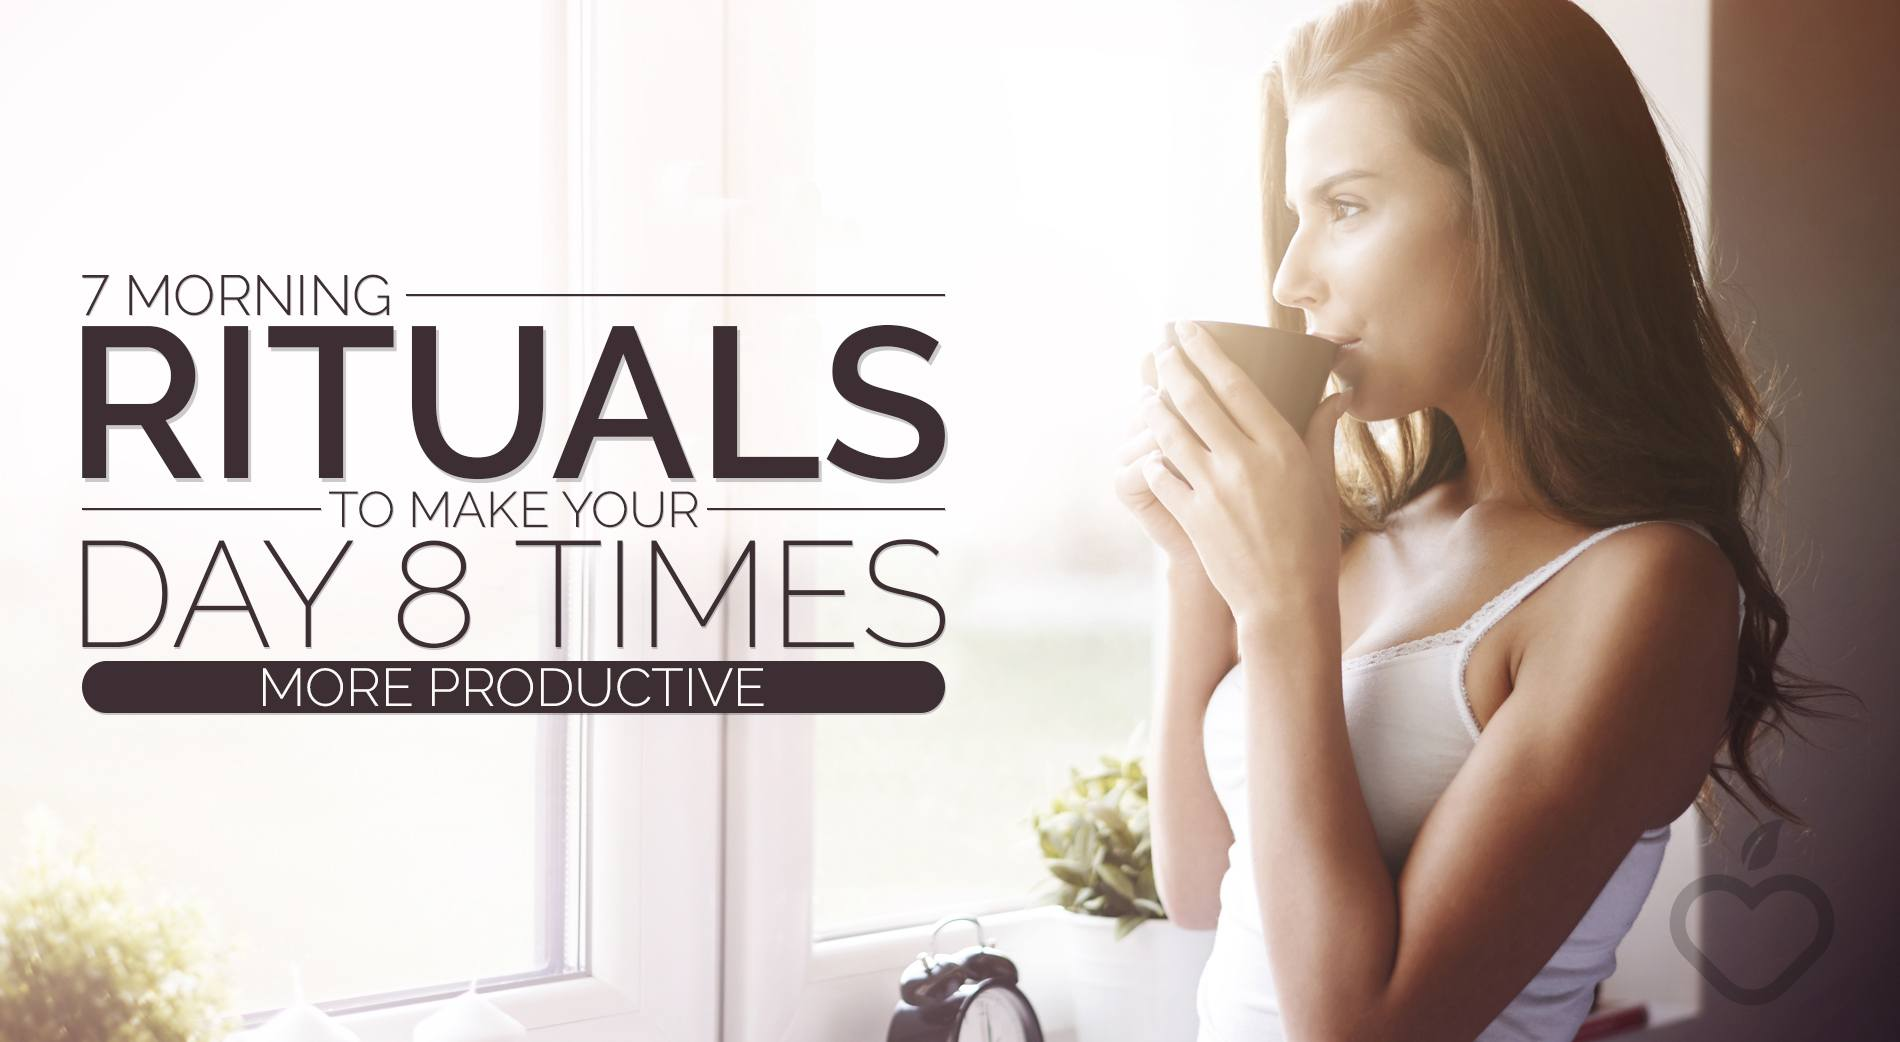 7 Morning Rituals To Make Your Day 8 Times More Productive